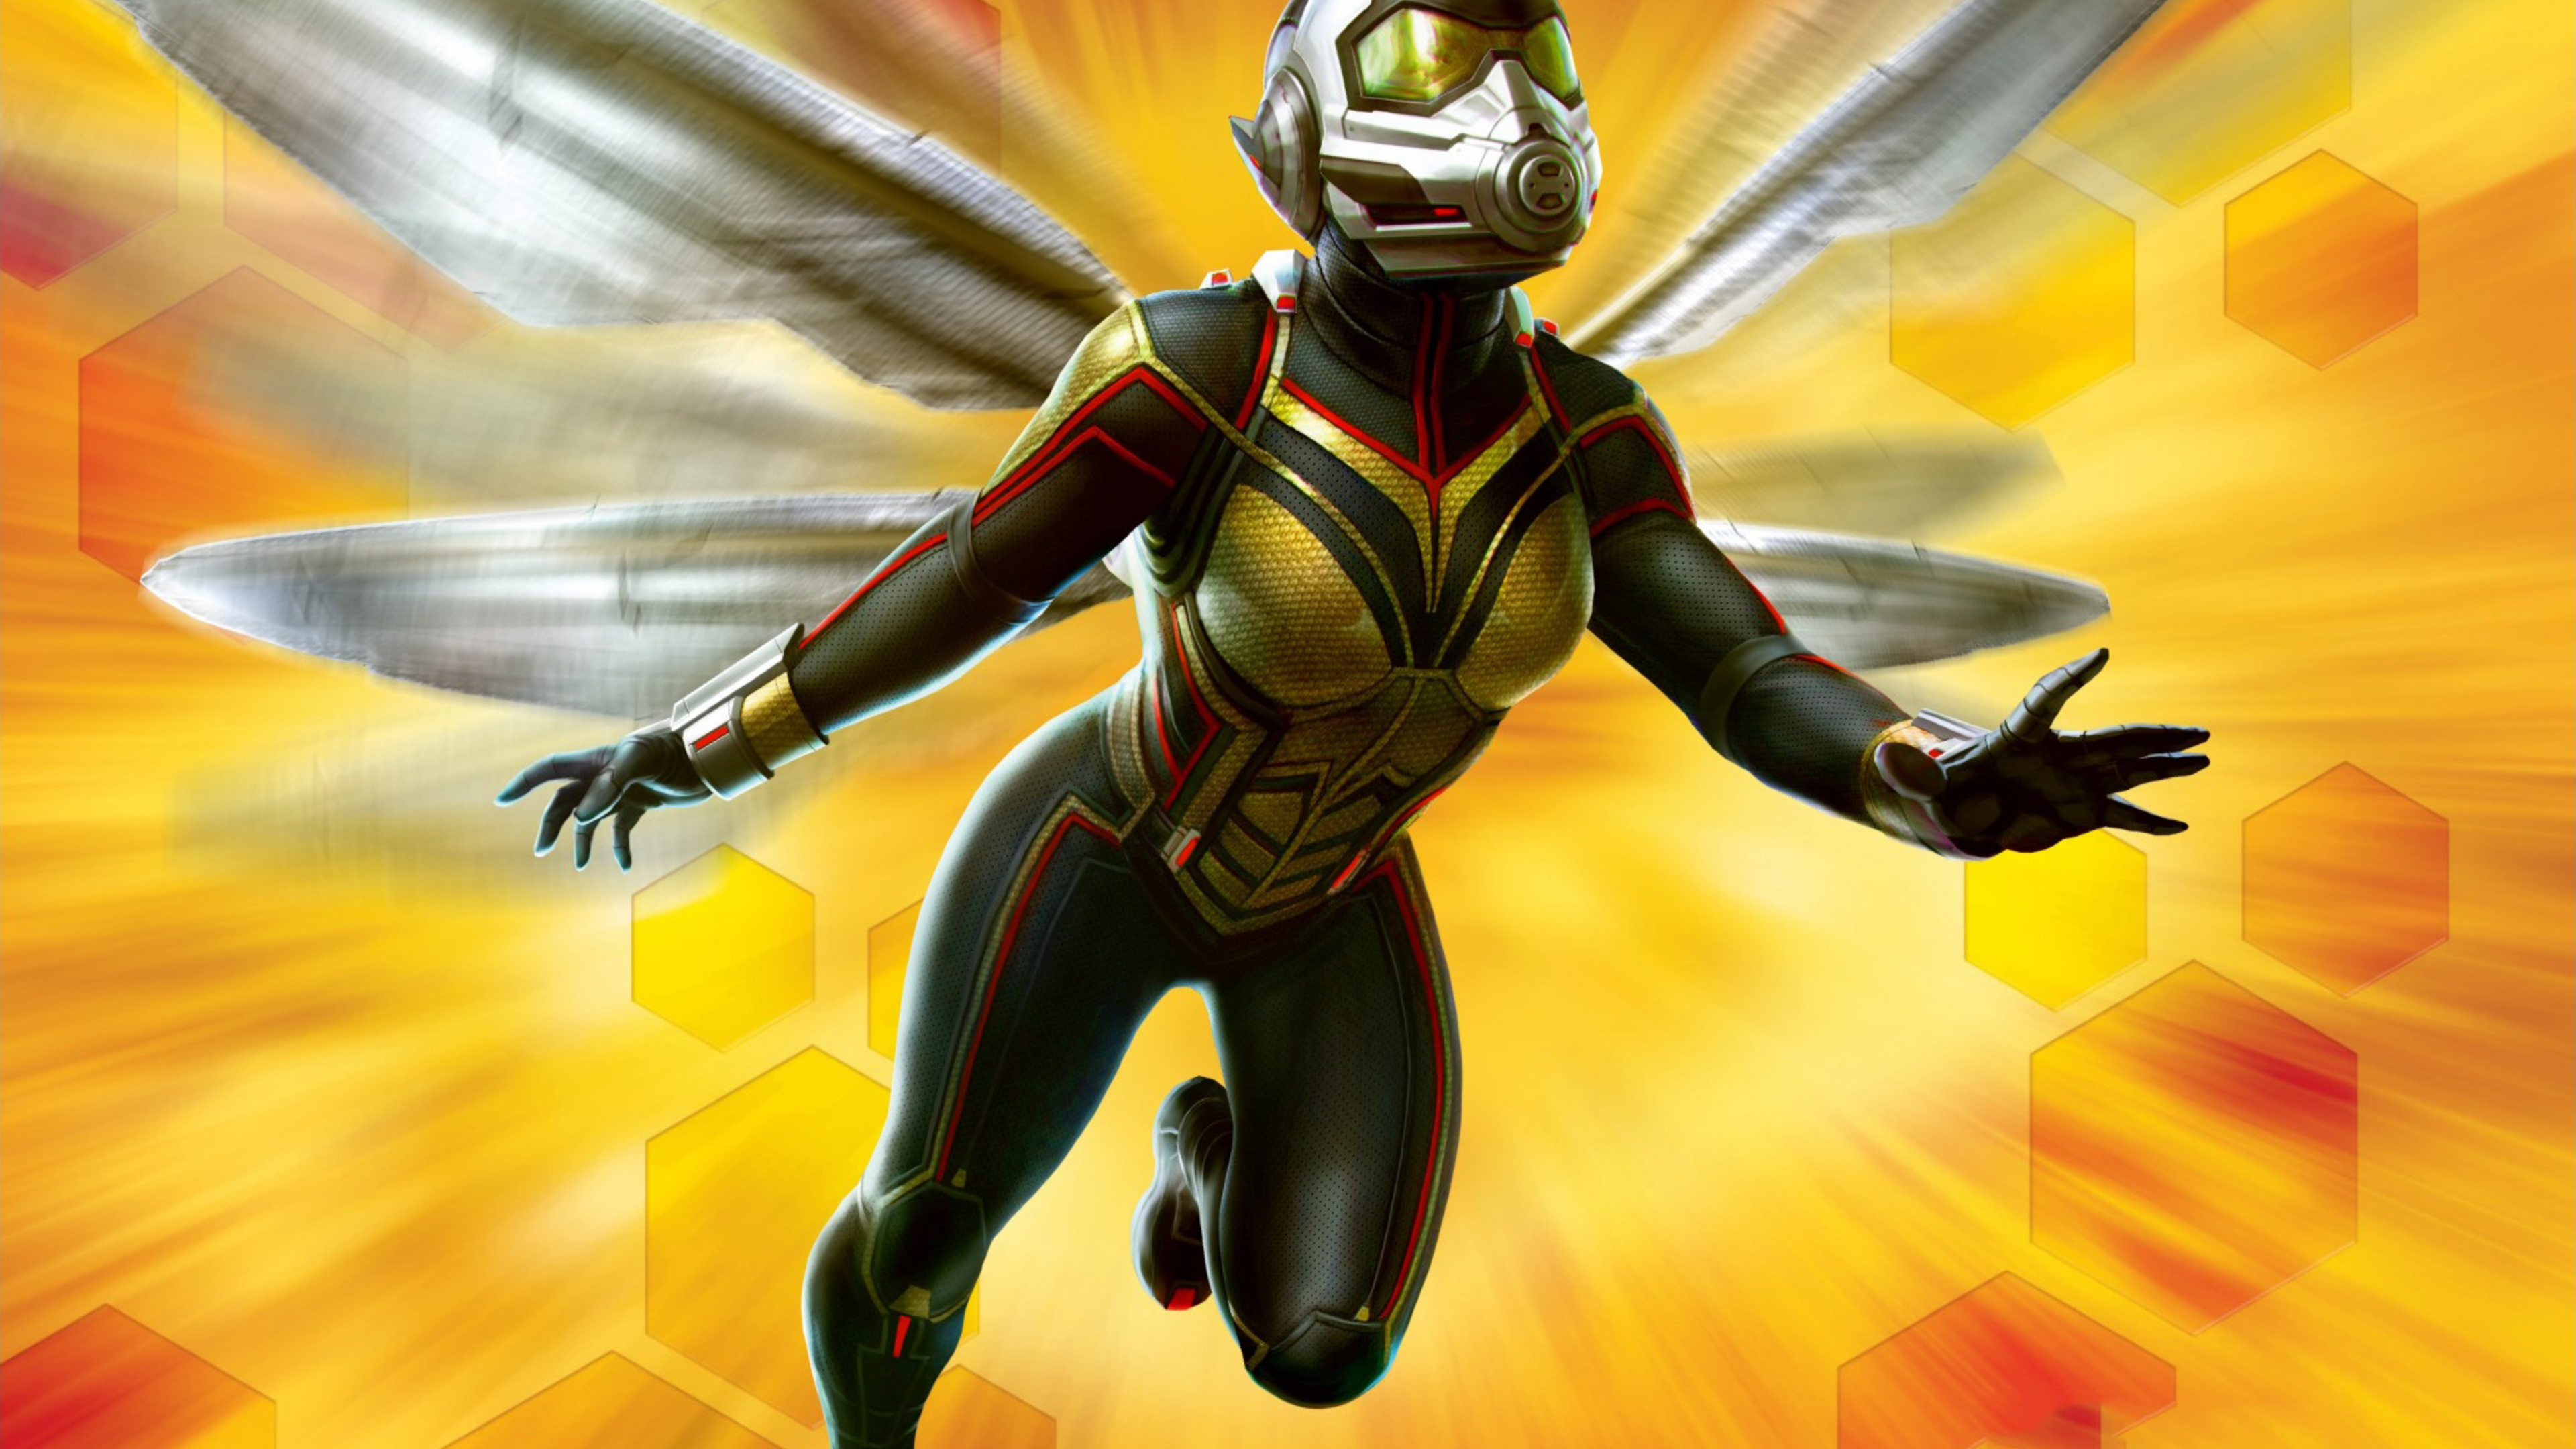 Ant Man And The Wasp Wallpaper: Wasp In Ant-Man And The Wasp Movie 4K Wallpaper